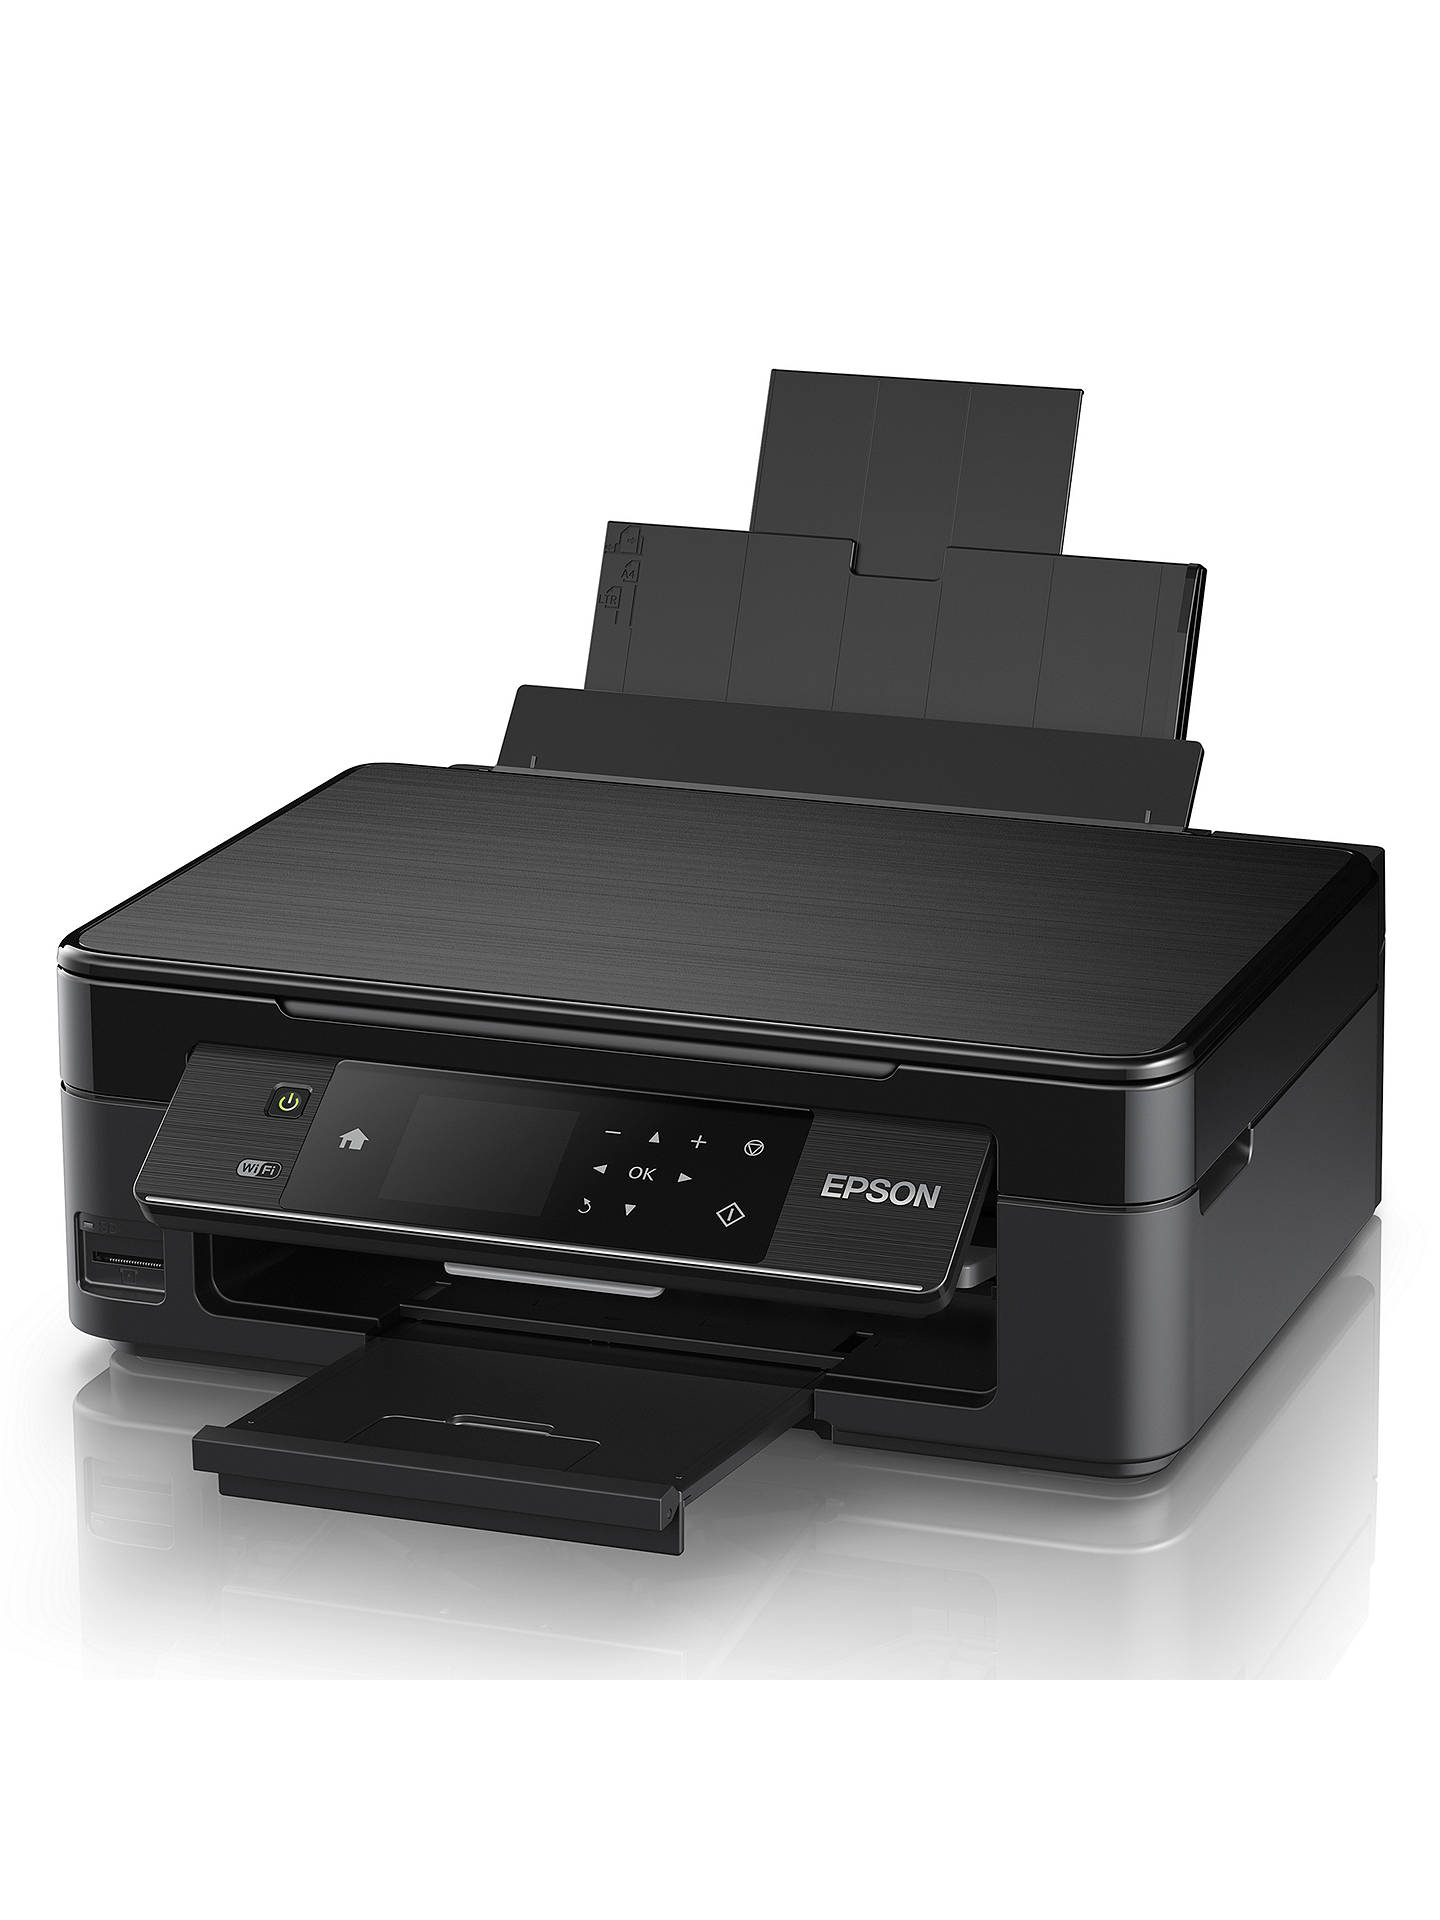 Buy Epson Expression Home XP-442 Wi-Fi All-in-One Printer, Black Online at johnlewis.com